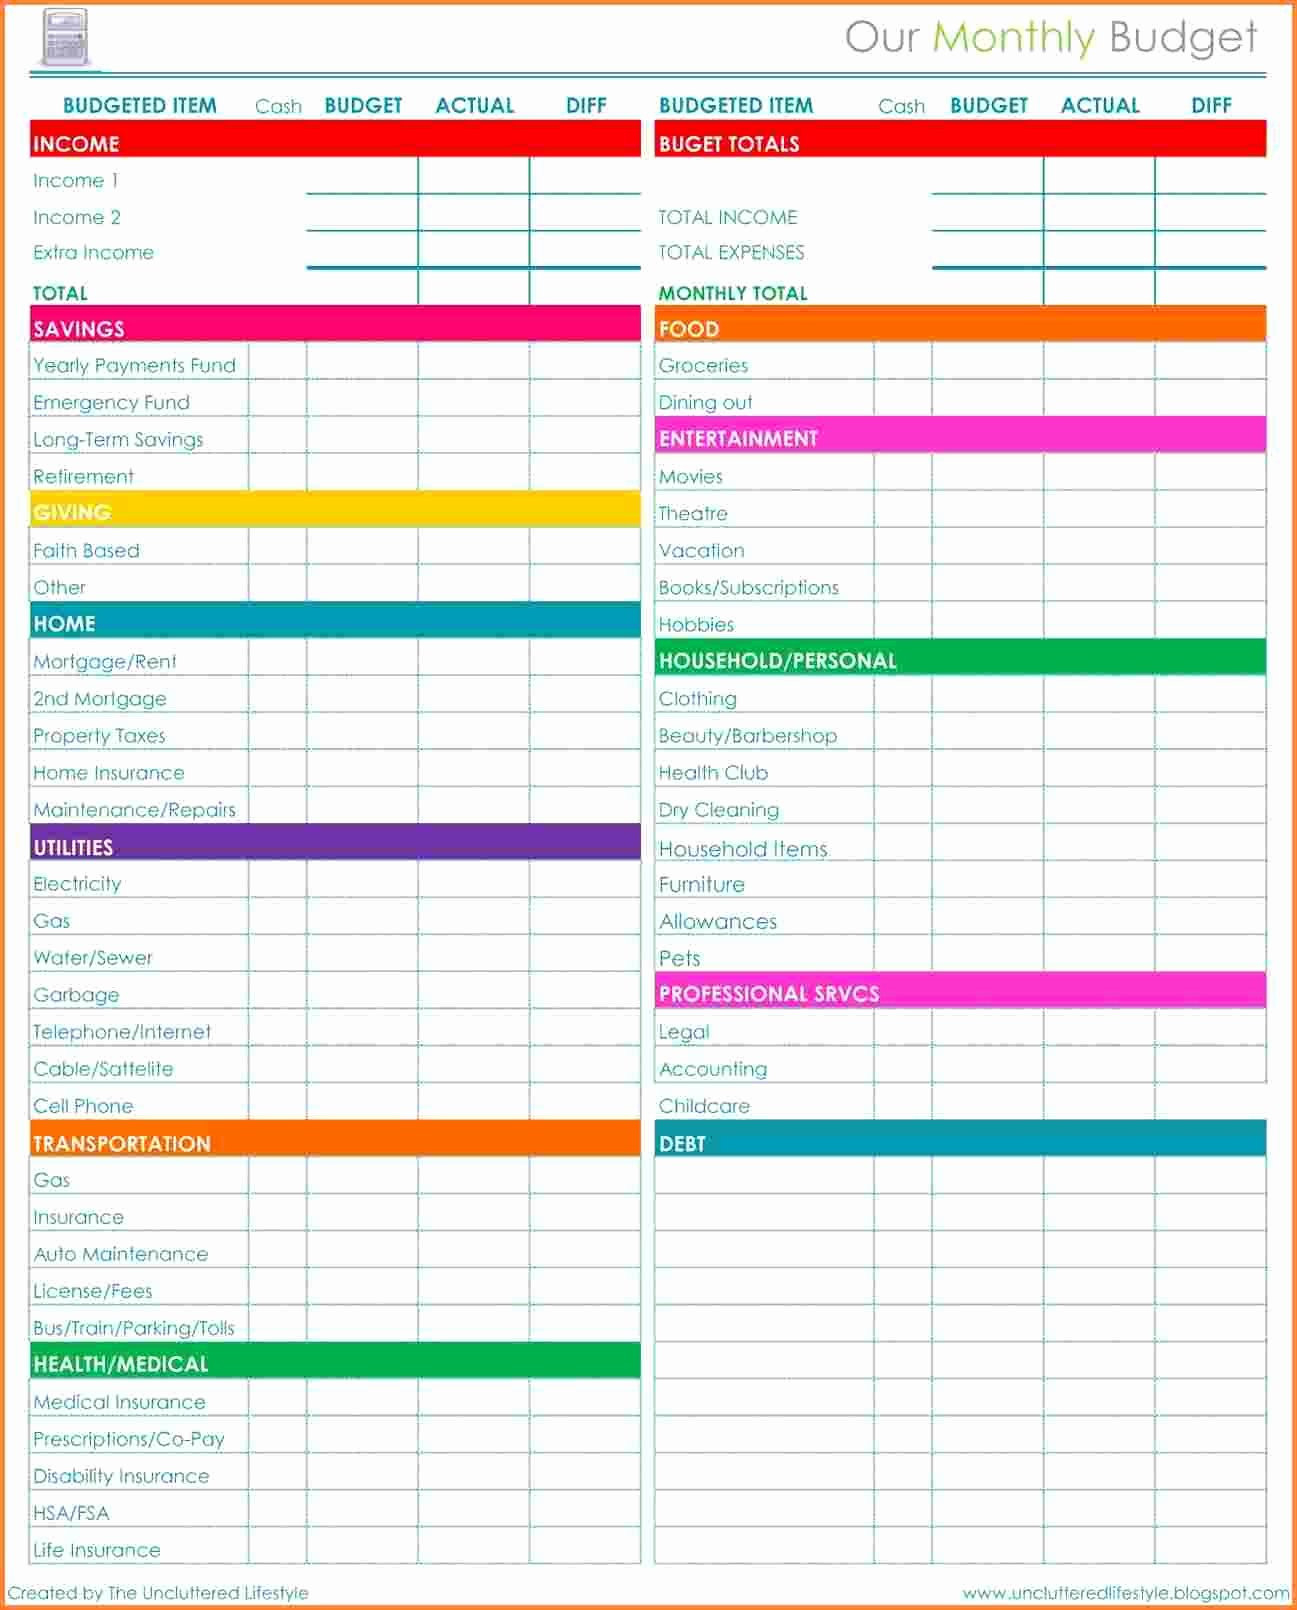 Awesome Monthly Bills Spreadsheet Template | Audiopinions-Monthly Bill Spreadsheet Templates 2021